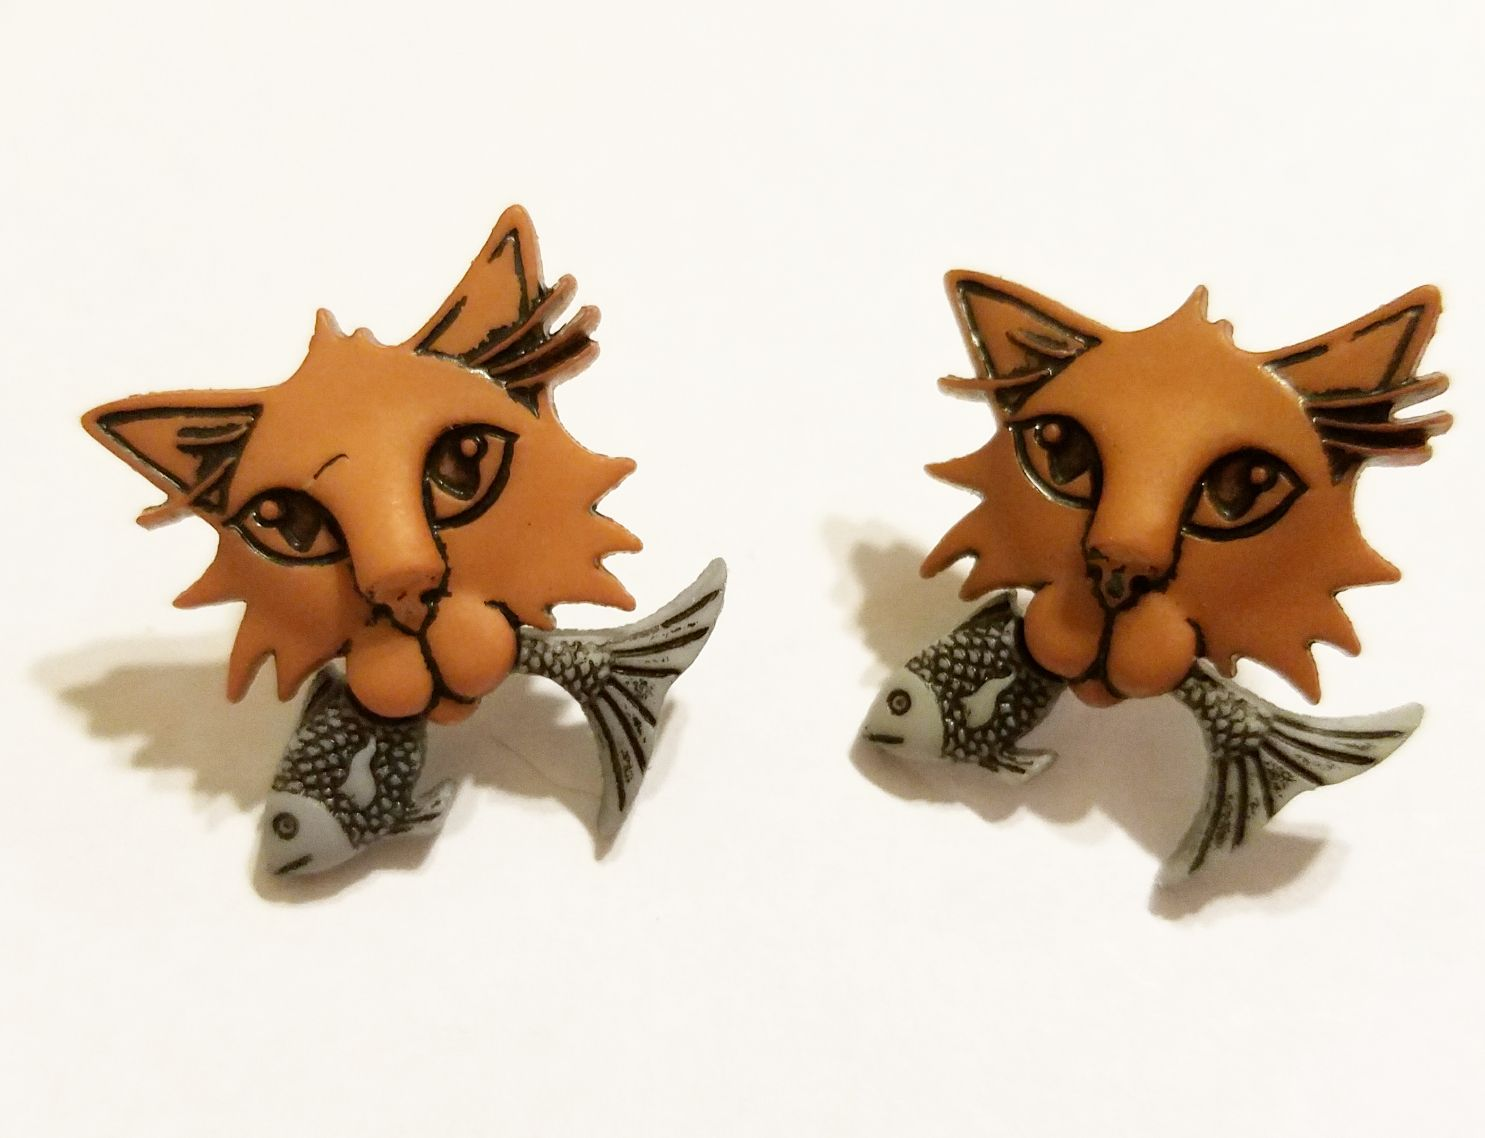 giftsforher kriszcreations earrings jewelry cats